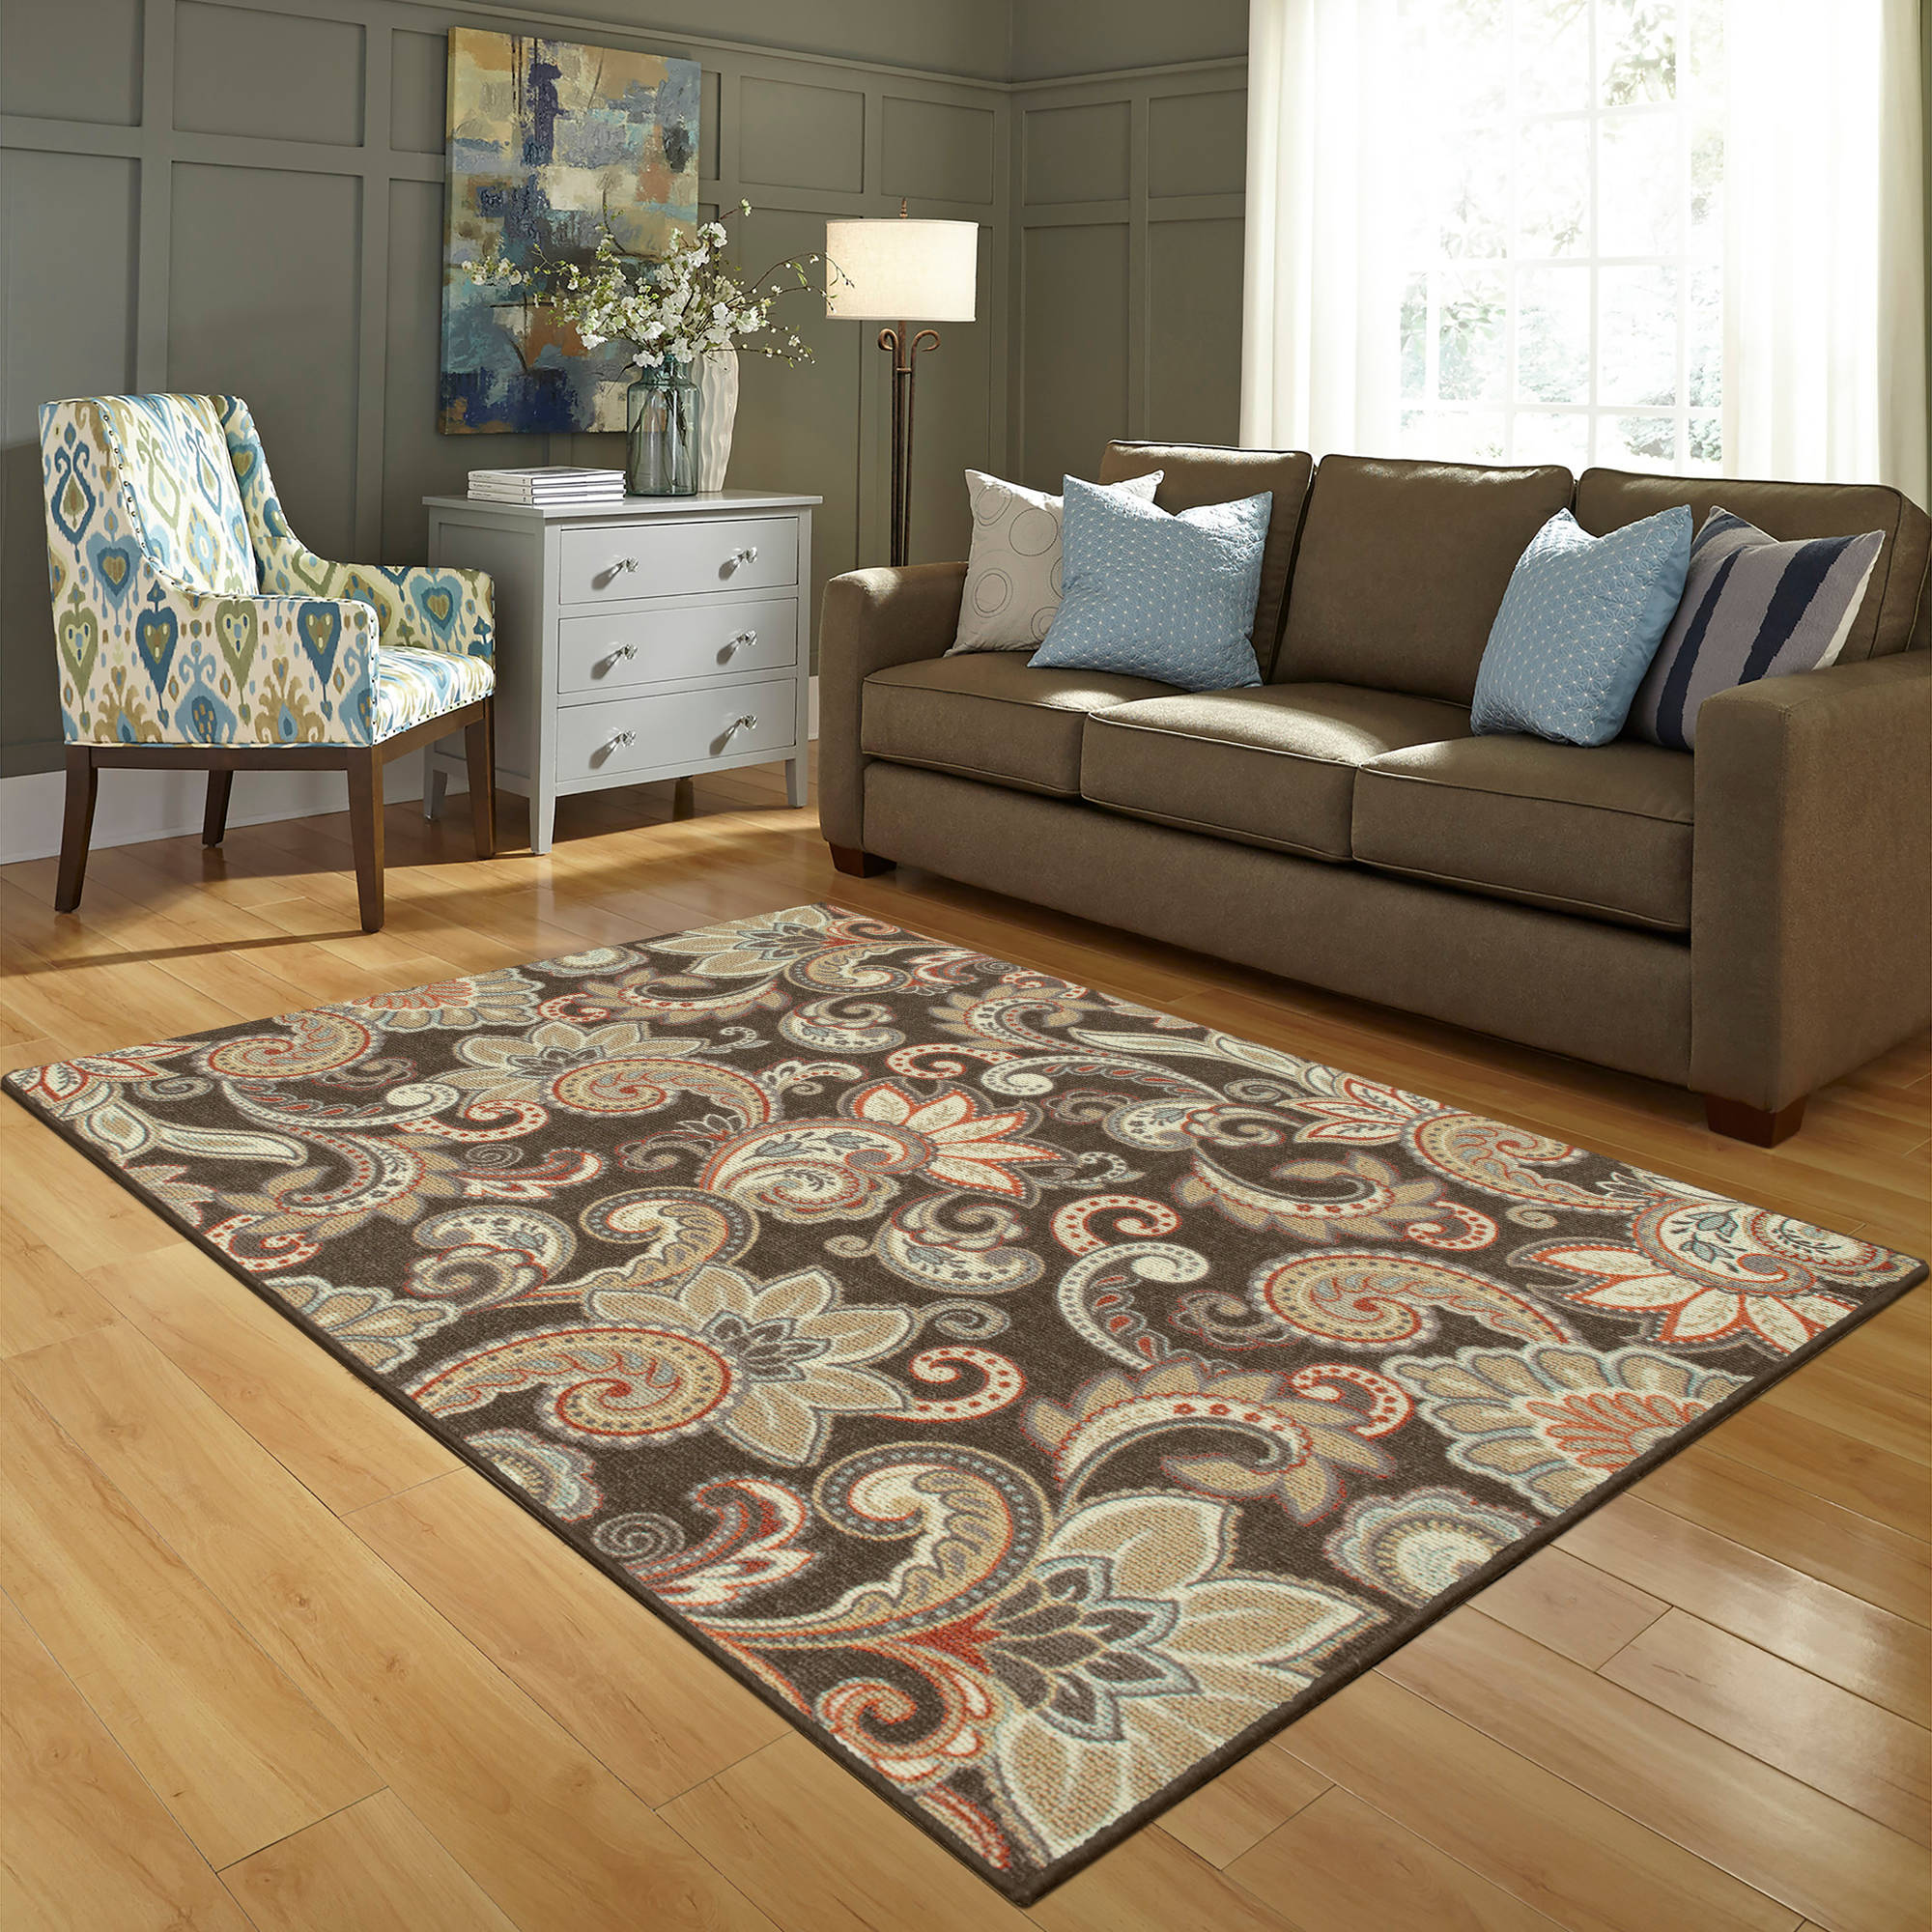 Better Homes and Gardens Brown Paisley Berber Printed Area Rug | eBay